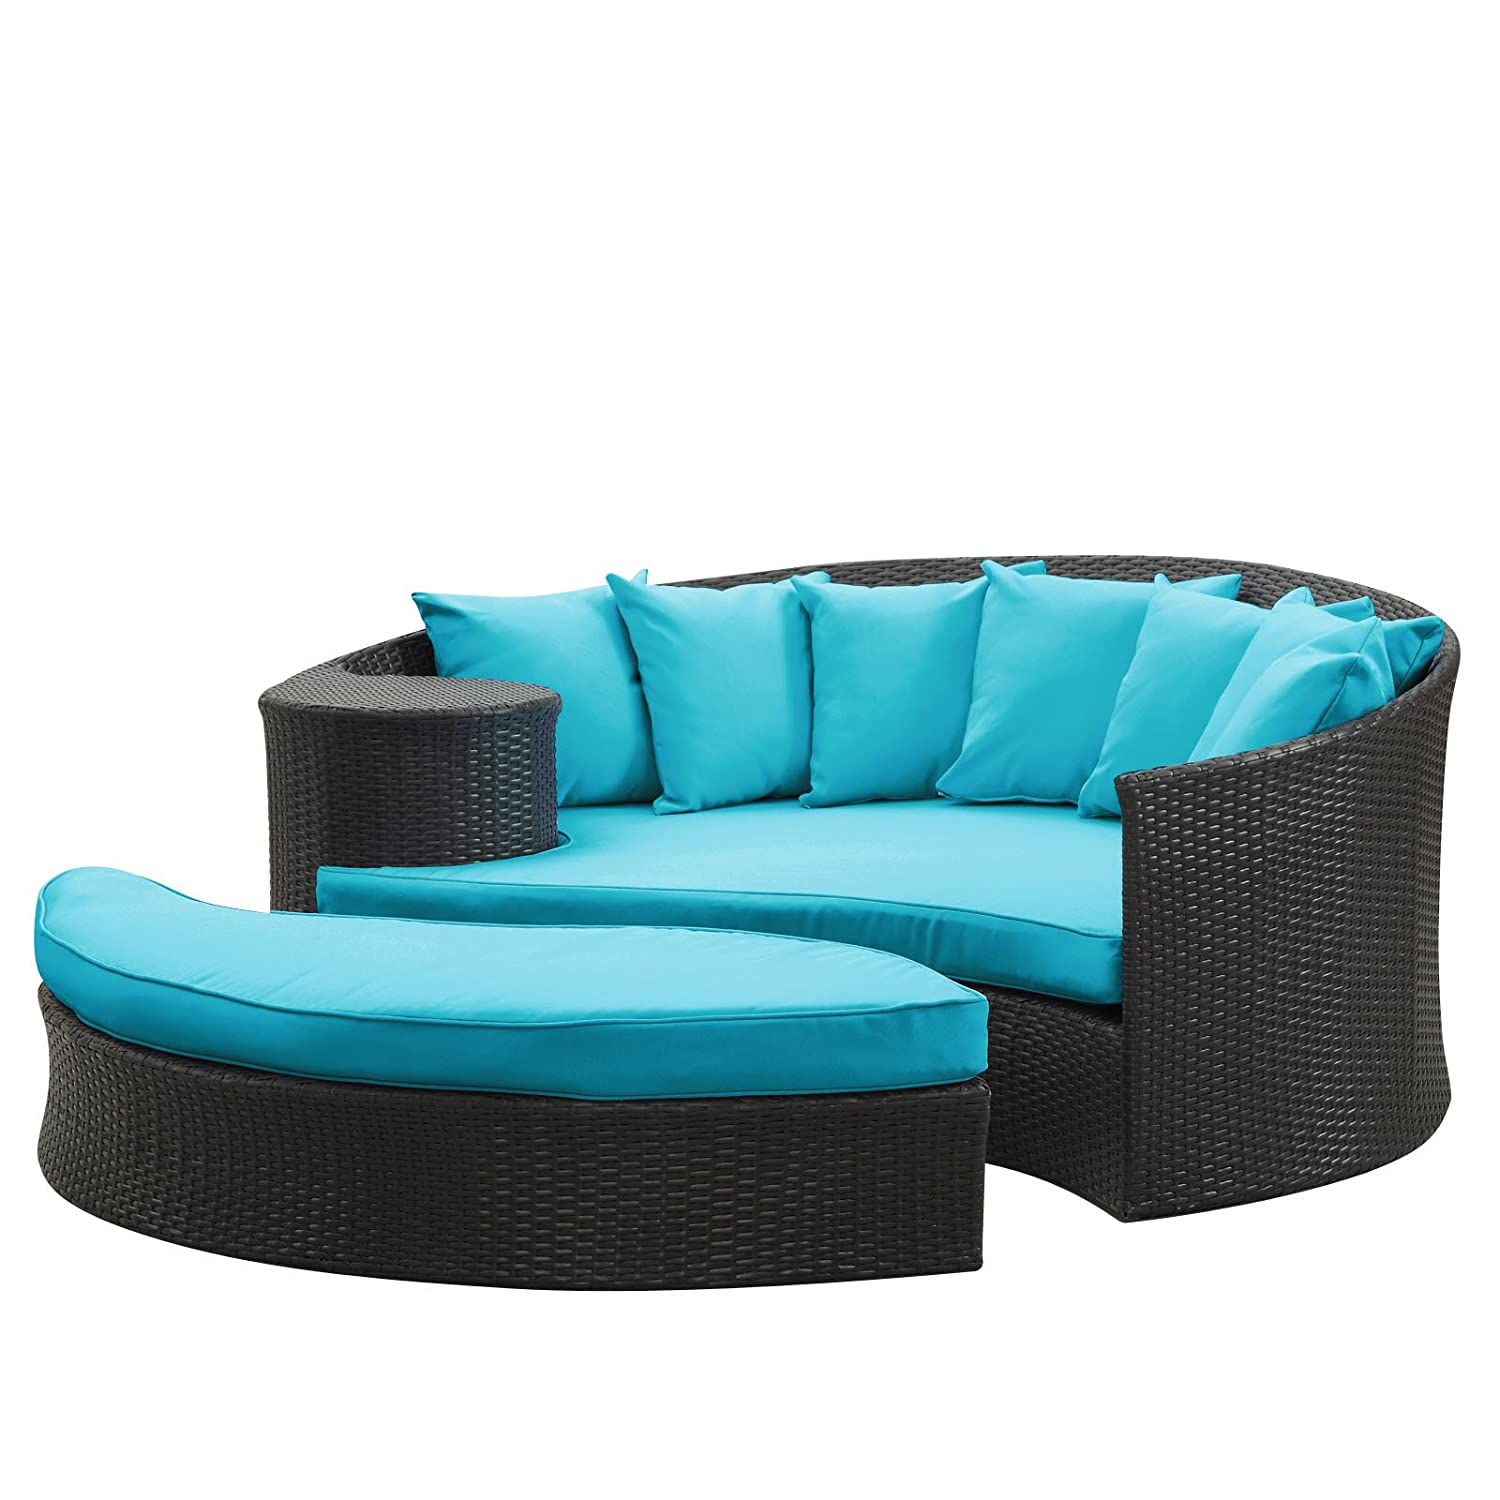 Amazon.com : LexMod Taiji Outdoor Wicker Patio Daybed with Ottoman in  Espresso with Turquoise Cushions : Outdoor And Patio Furniture Sets :  Garden & Outdoor